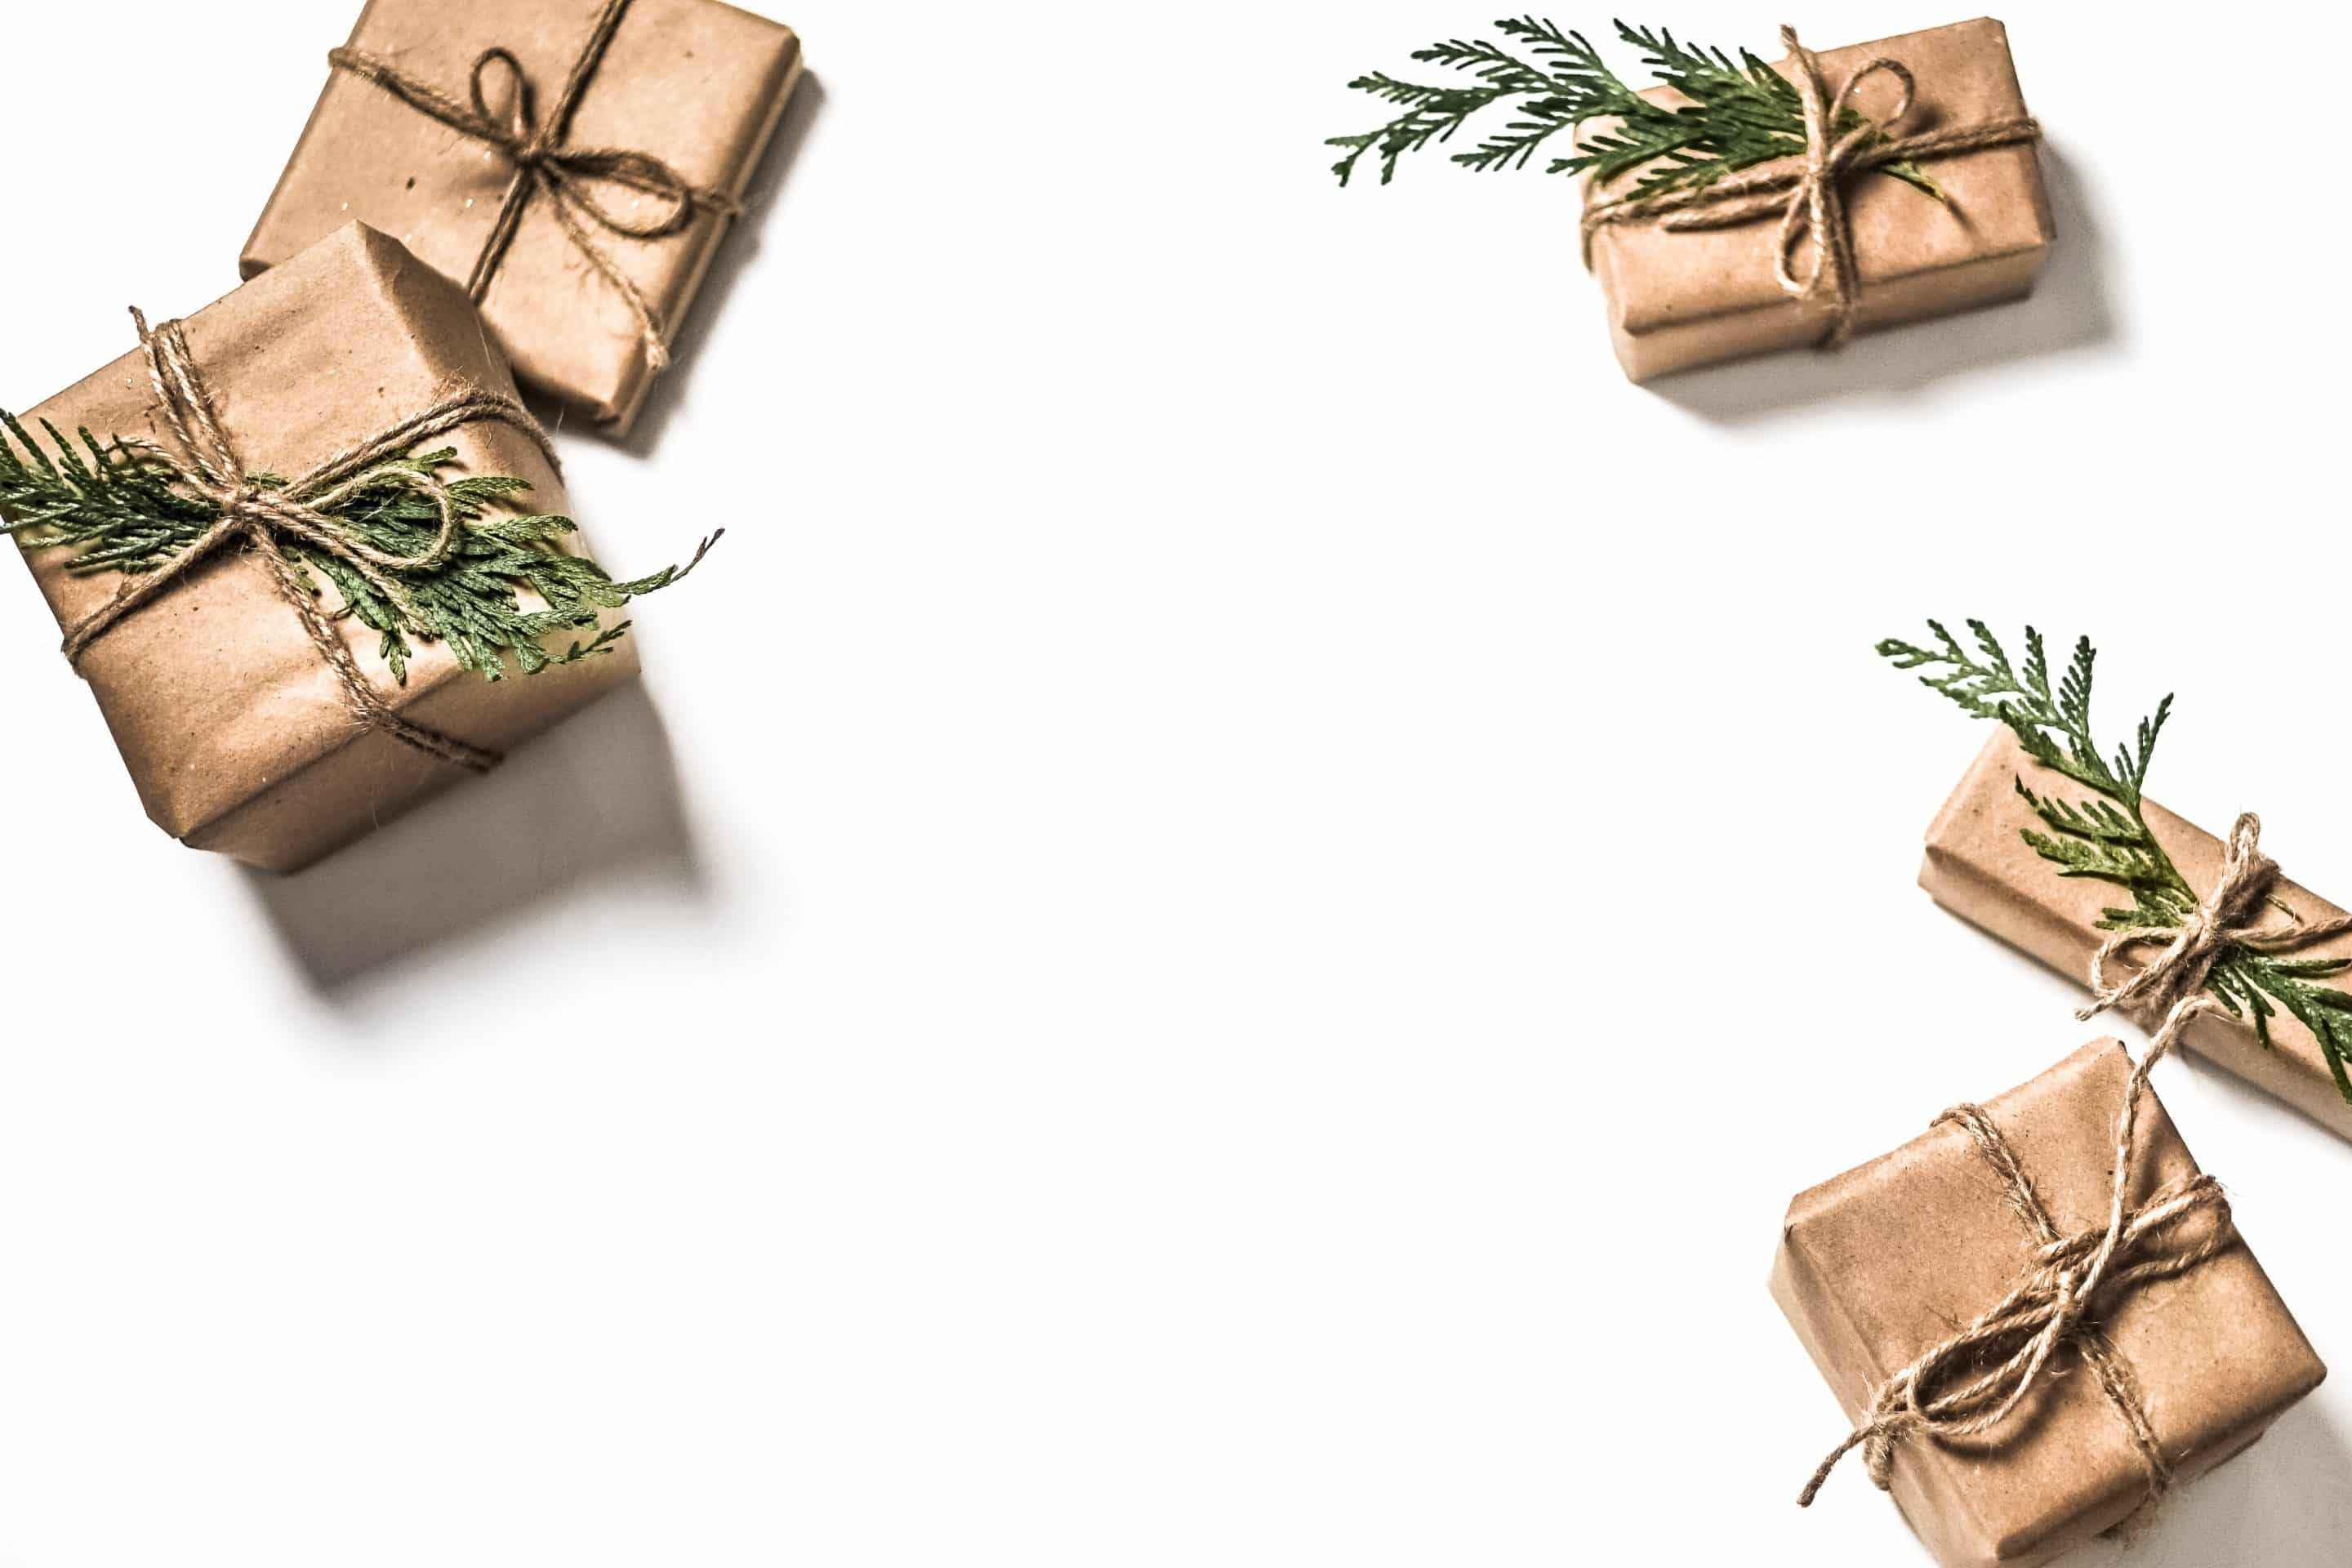 image of gifts wrapped in brown paper on white background from unsplash.com